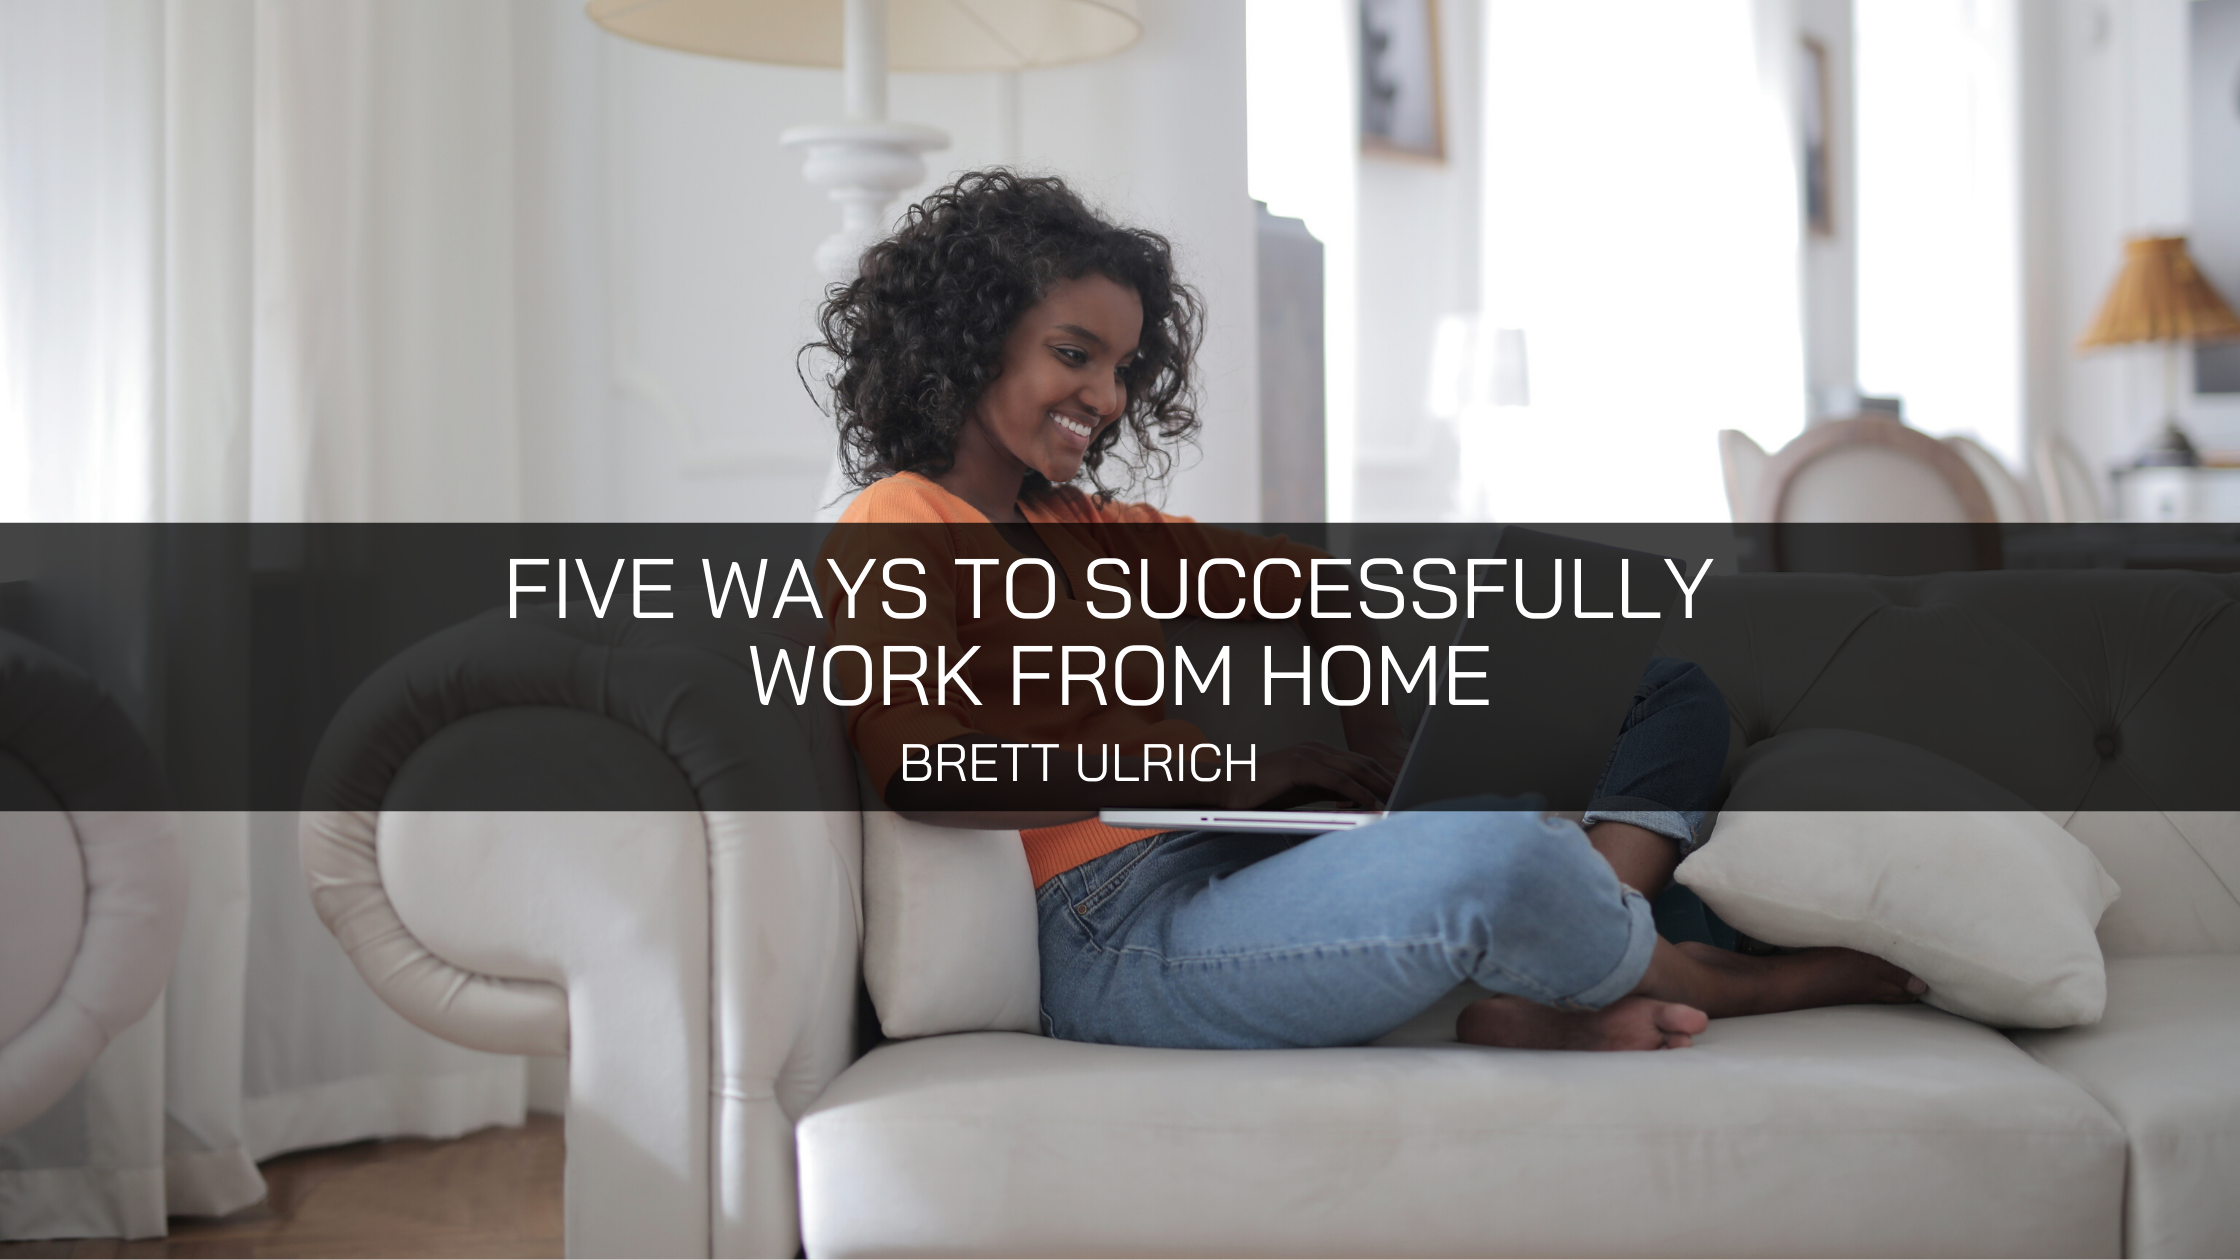 Brett Ulrich Of Fredericksburg Shares Five Ways To Successfully Work From Home